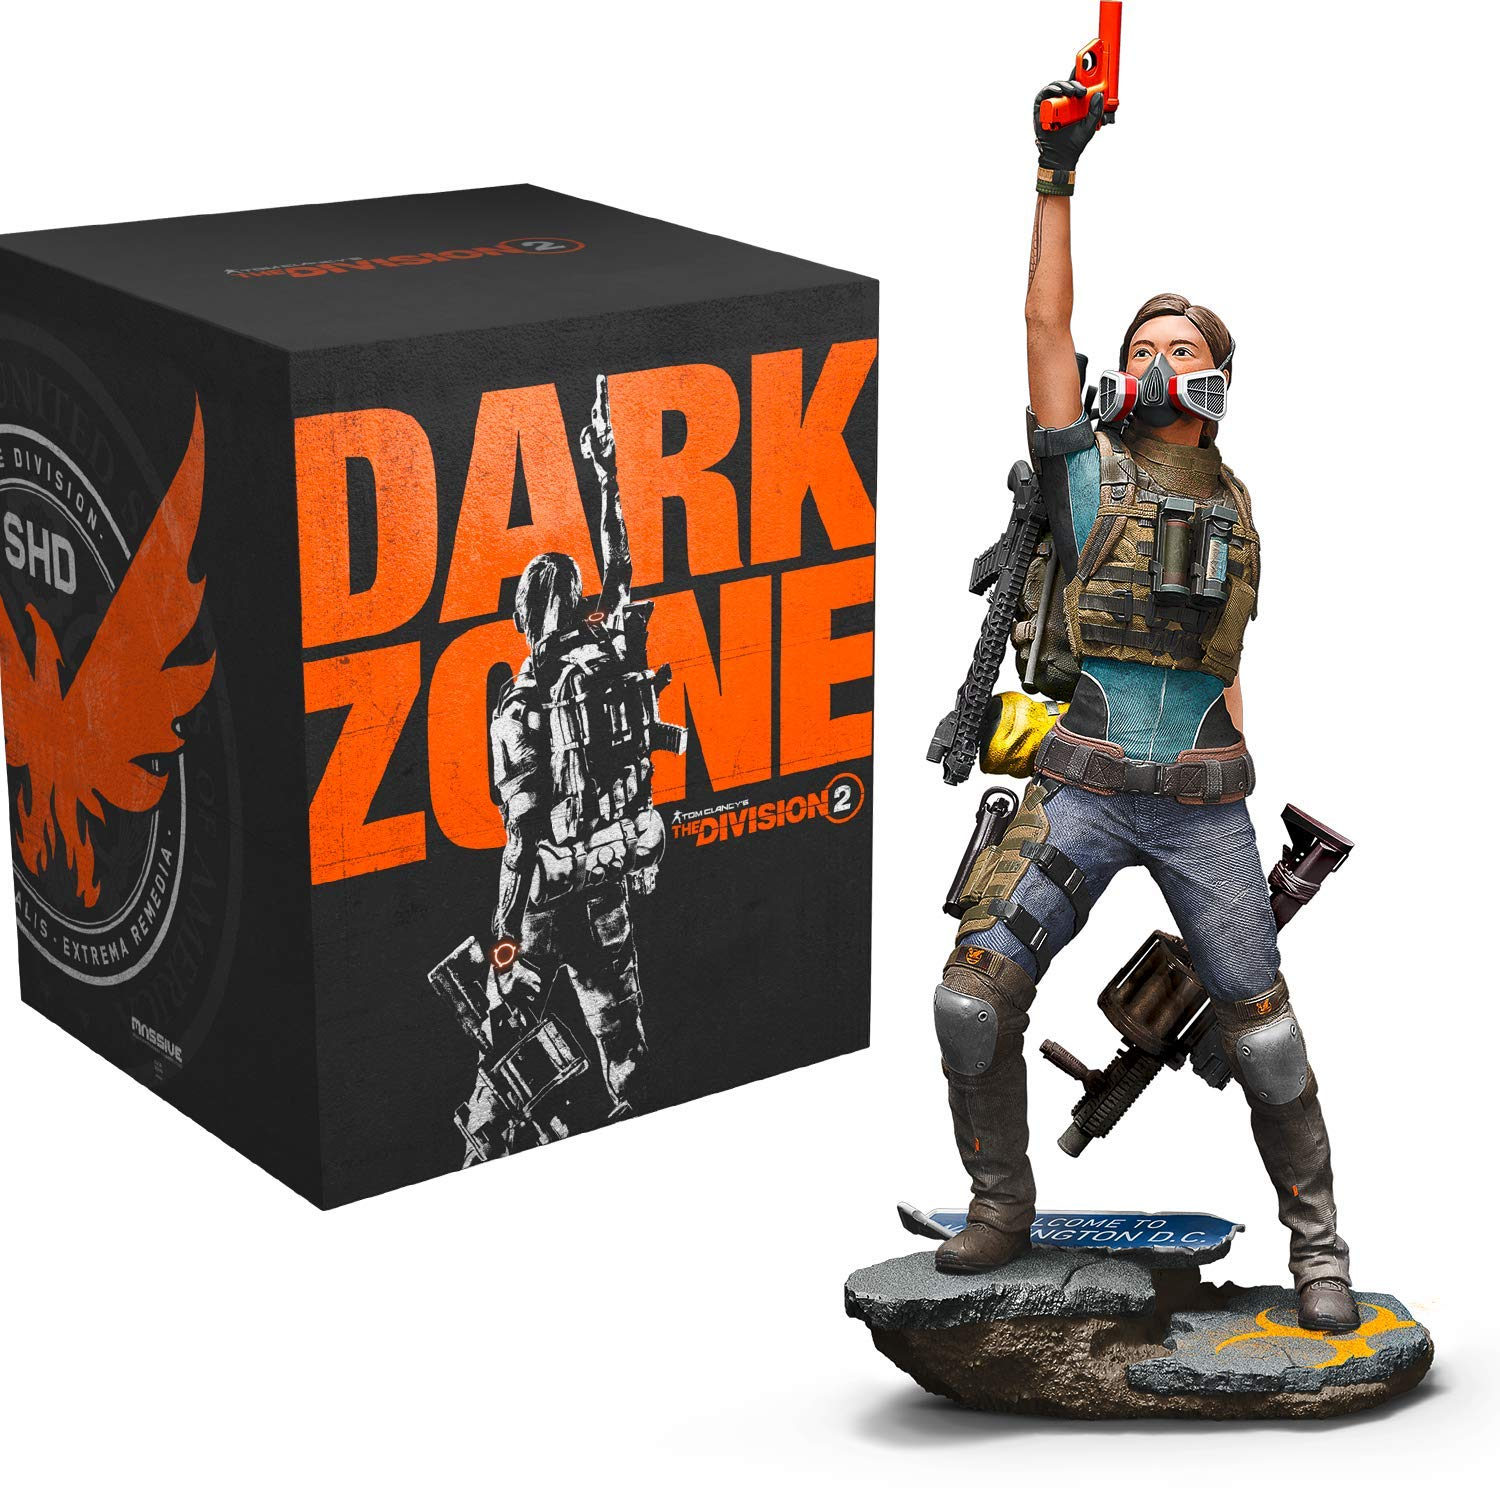 Tom Clancy's The Division 2 - Dark Zone Edition - [PlayStation 4 - Disk]